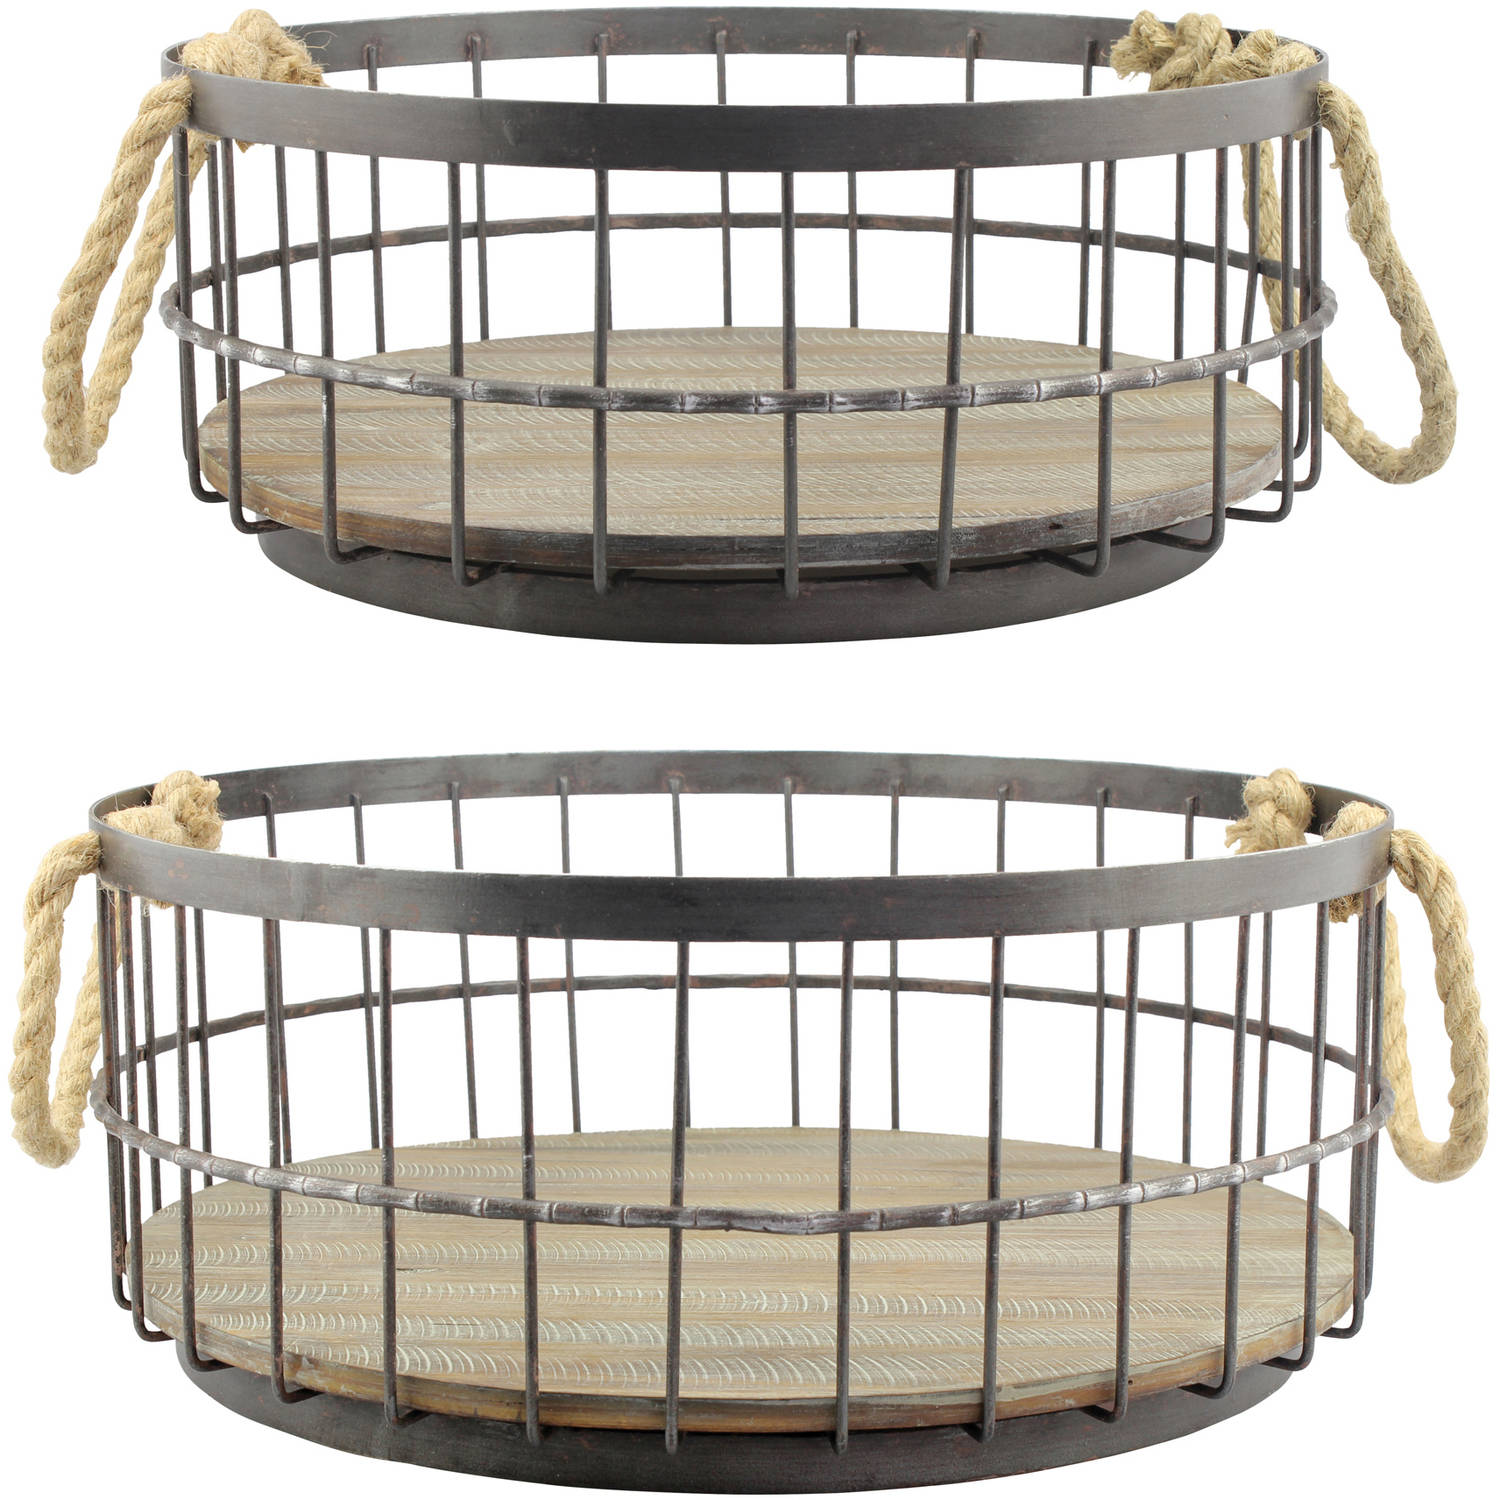 Set of 2 Wire and Wood Coastal Baskets